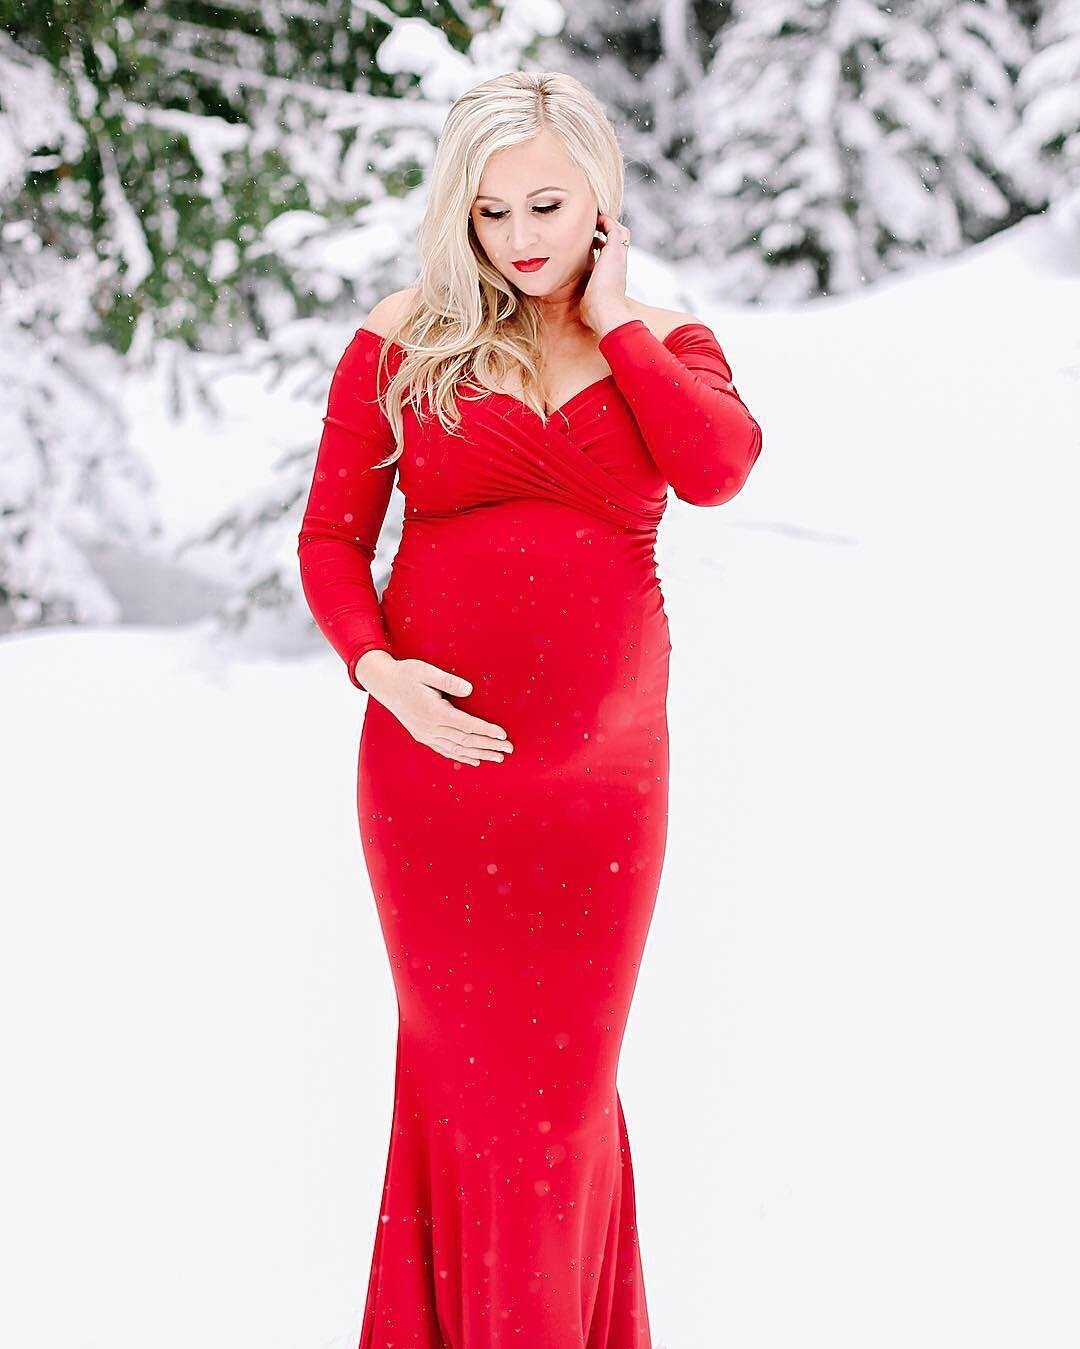 Miss madison photo props designer maternity gown accessories chloe fitted maternity gown off the shoulder maternity gown long sleeve maternity gown ombrellifo Choice Image